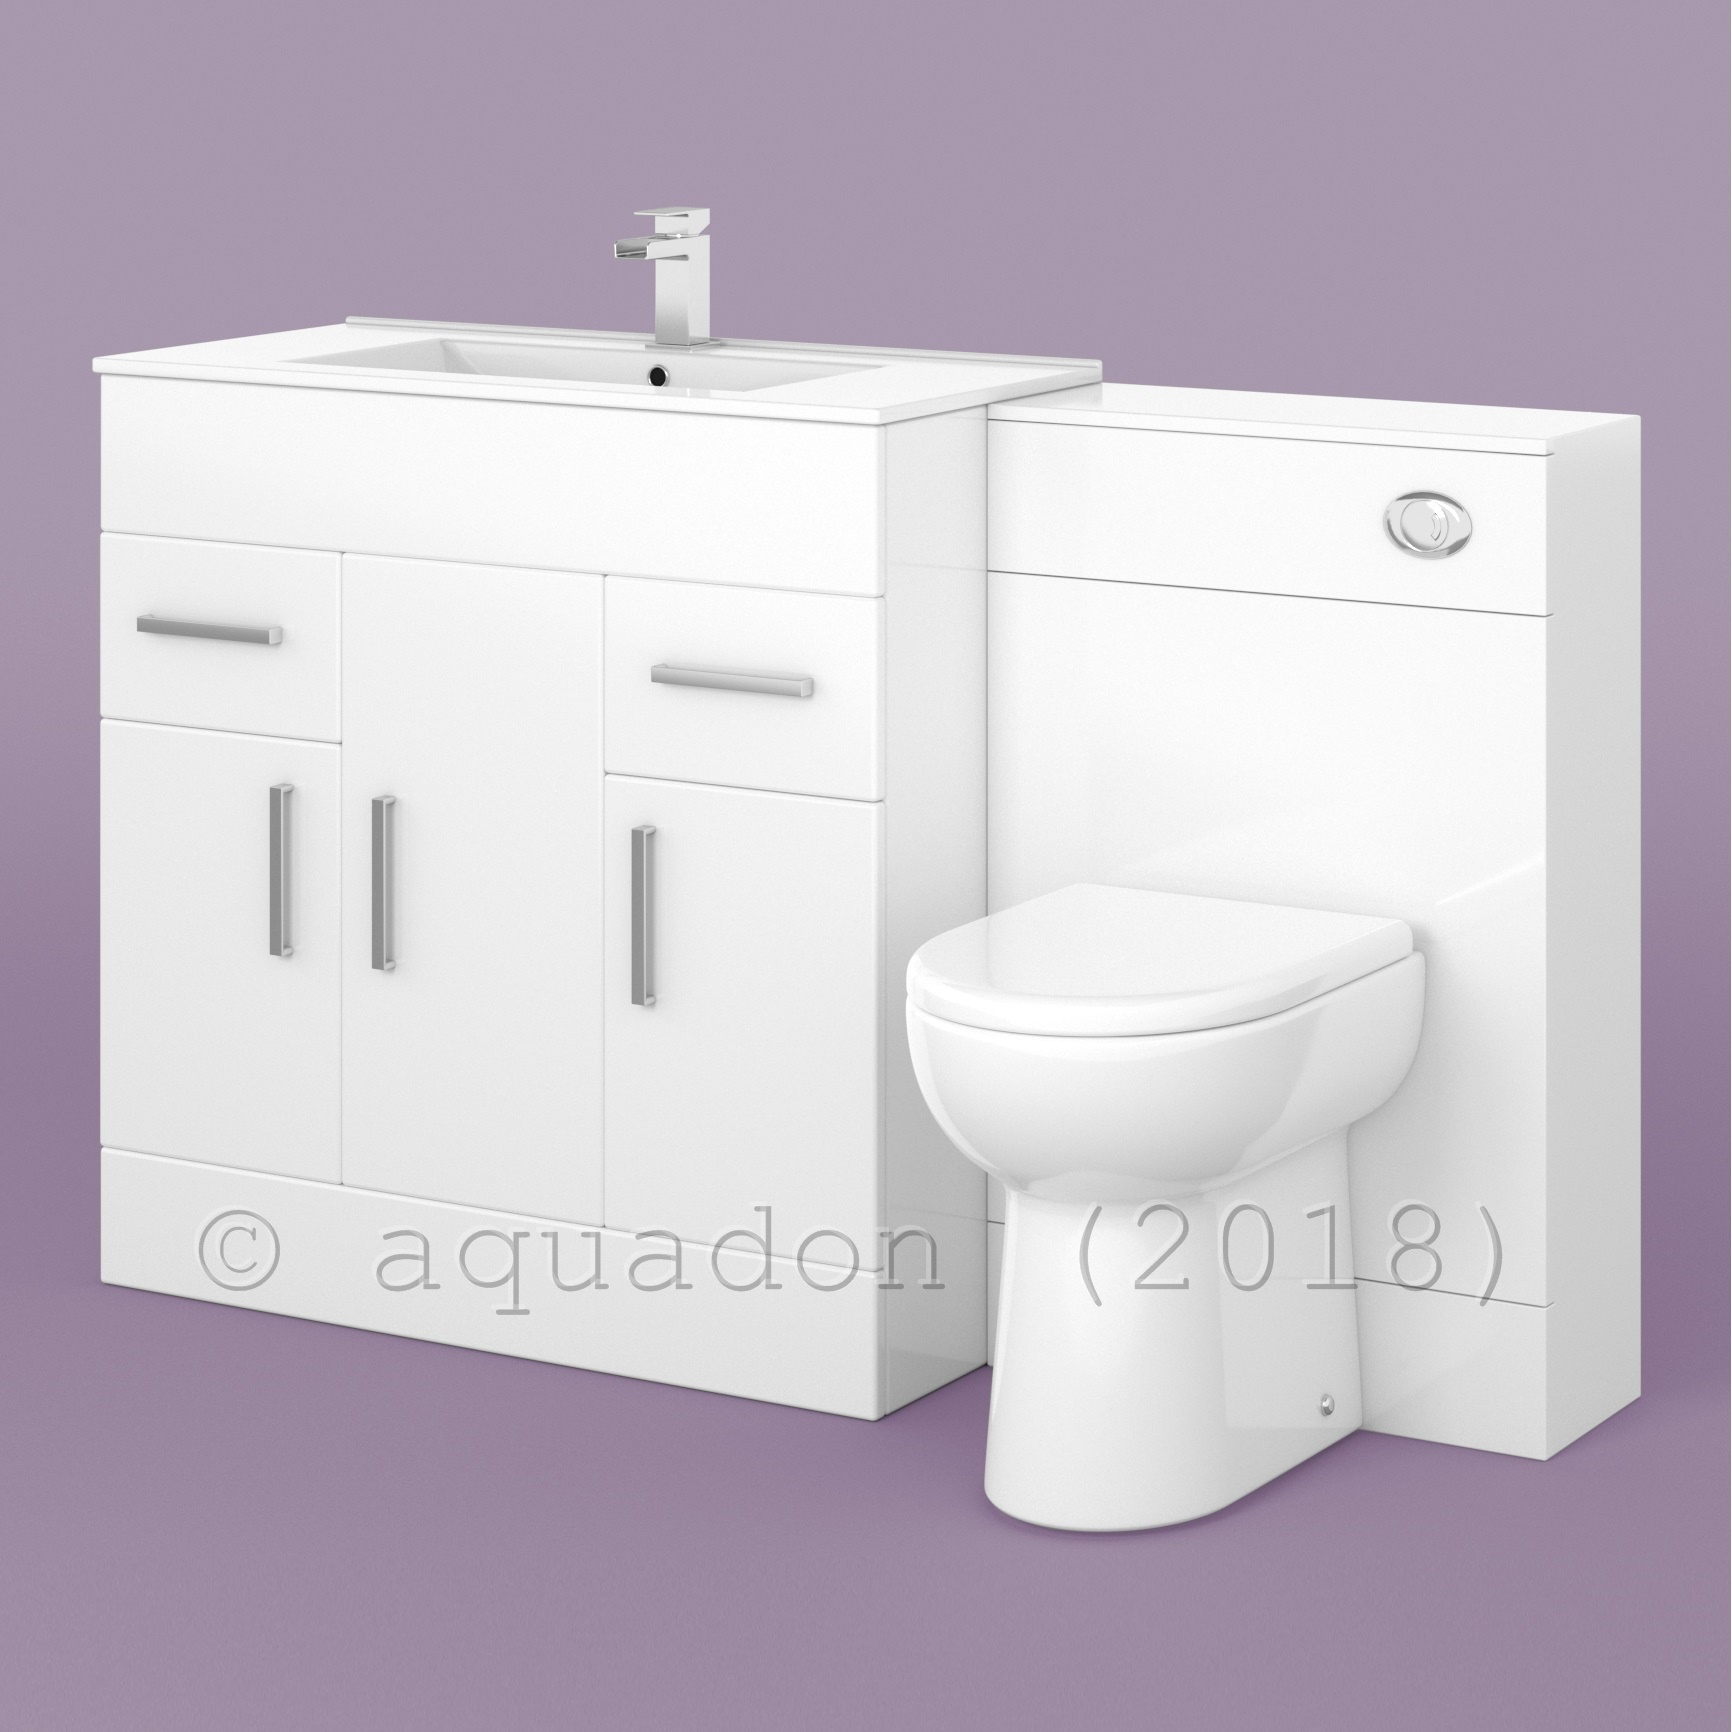 750mm White Vanity Unit Basin Sink And Toilet Bathroom Furniture Suite Turin Ebay